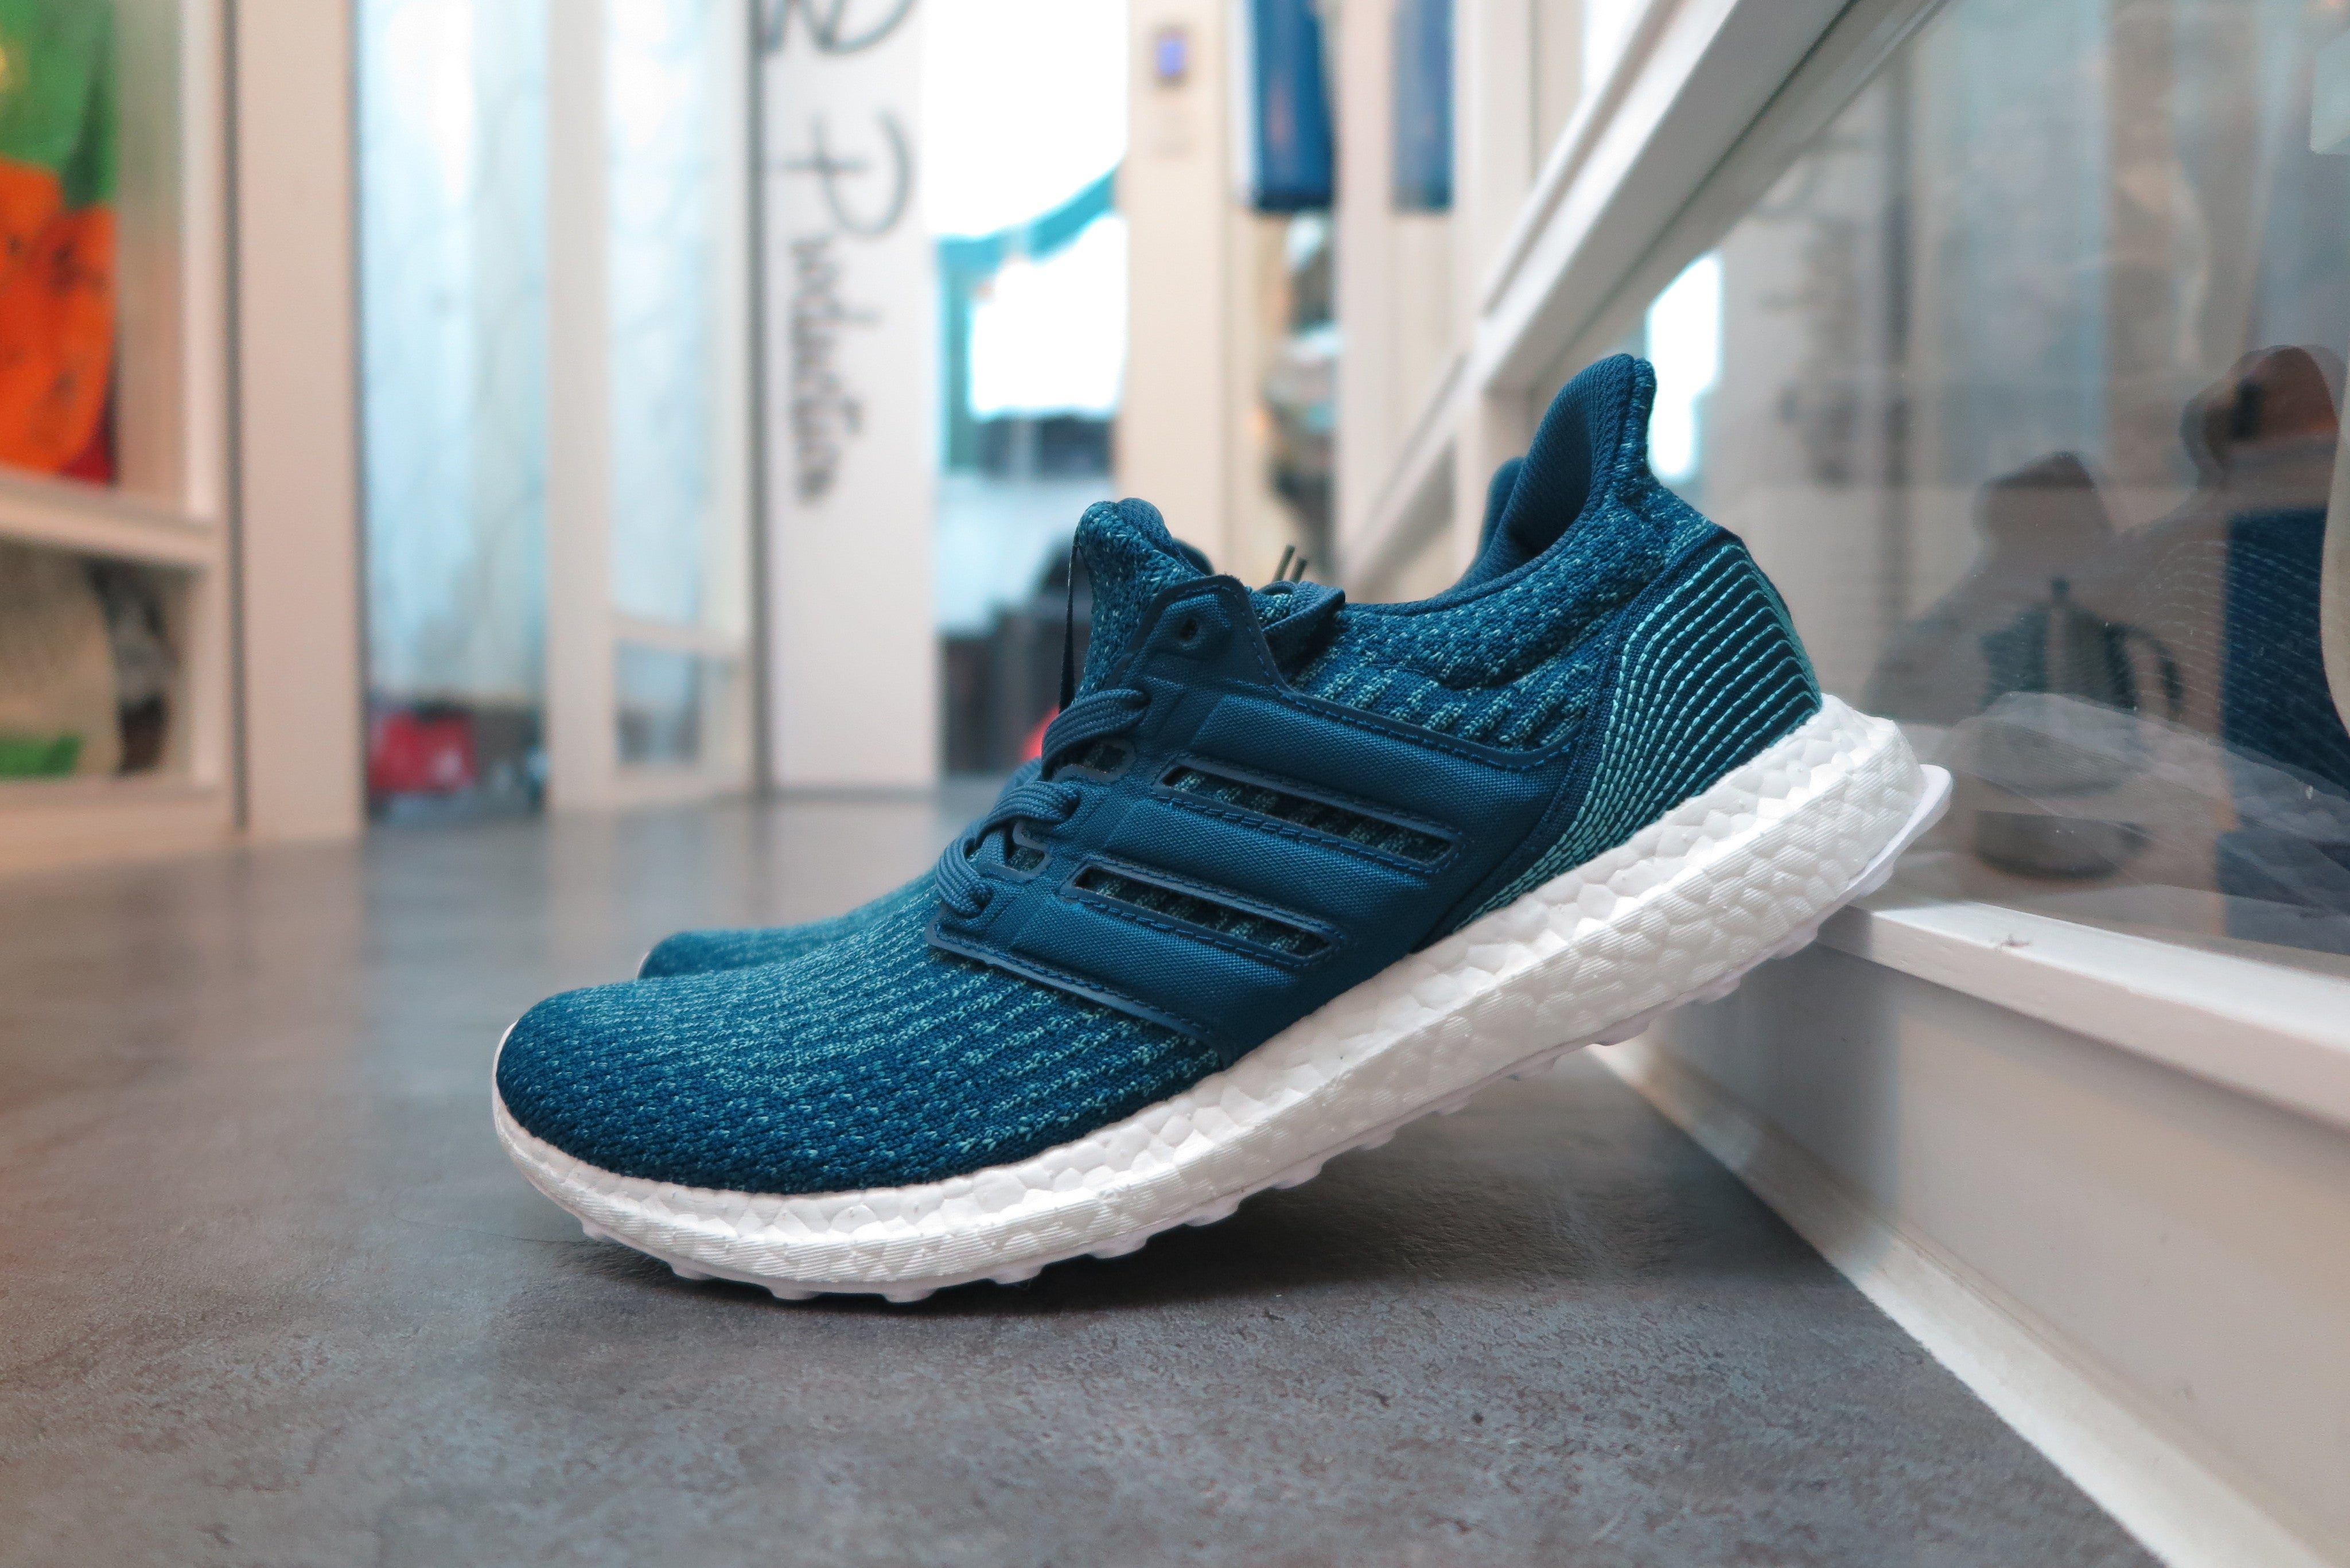 size 40 926f7 e6cb4 Parley X adidas Ultra Boost 3.0 - Coral Blue/Into Blue ...